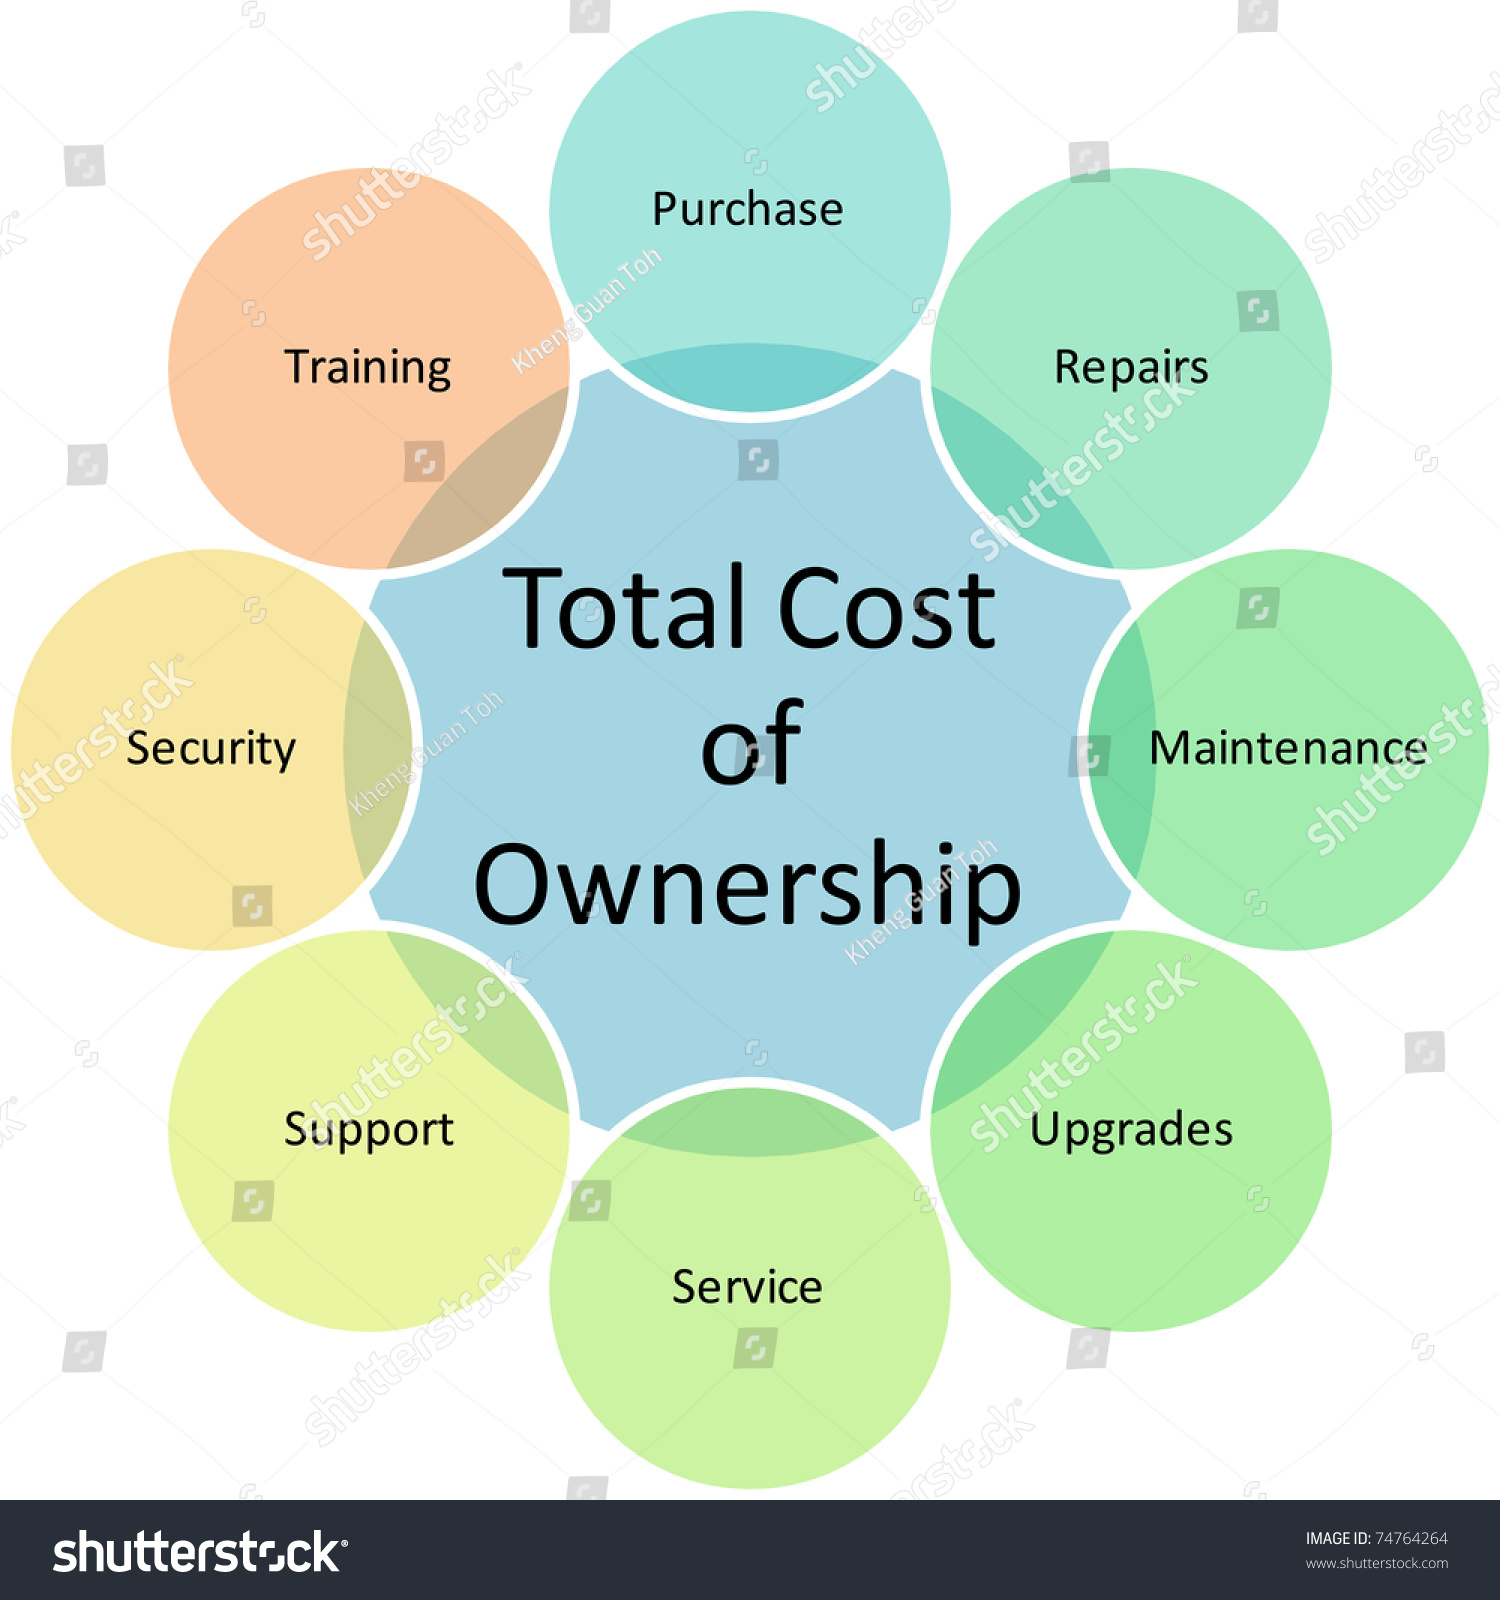 total cost ownership business diagram management stock total cost of ownership business diagram management chart illustration